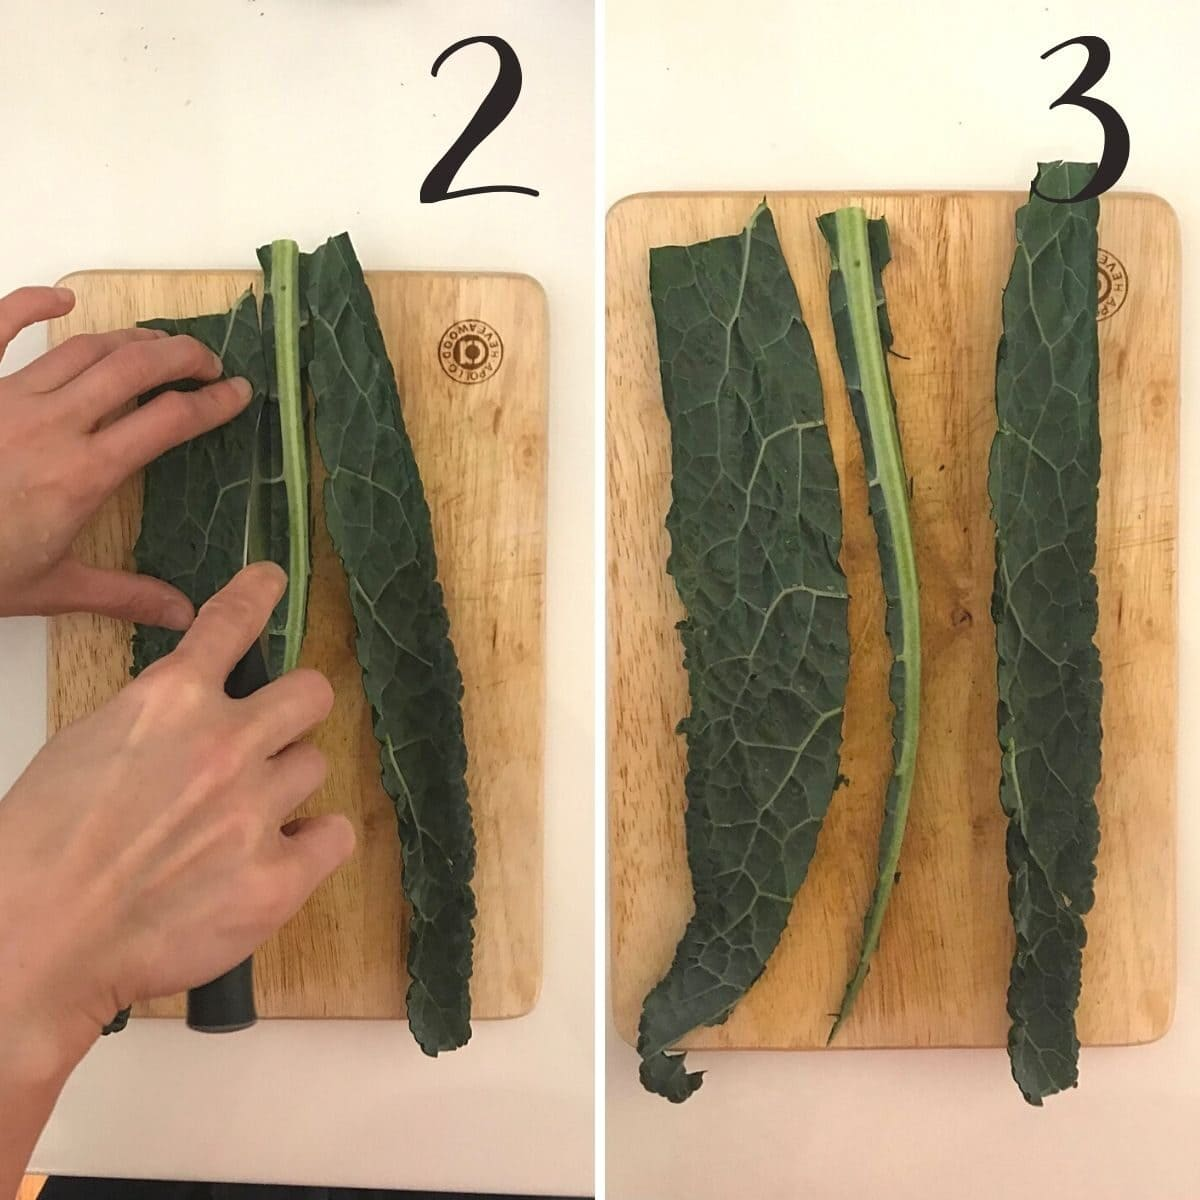 steps 2 & 3 showing cutting away central stalk